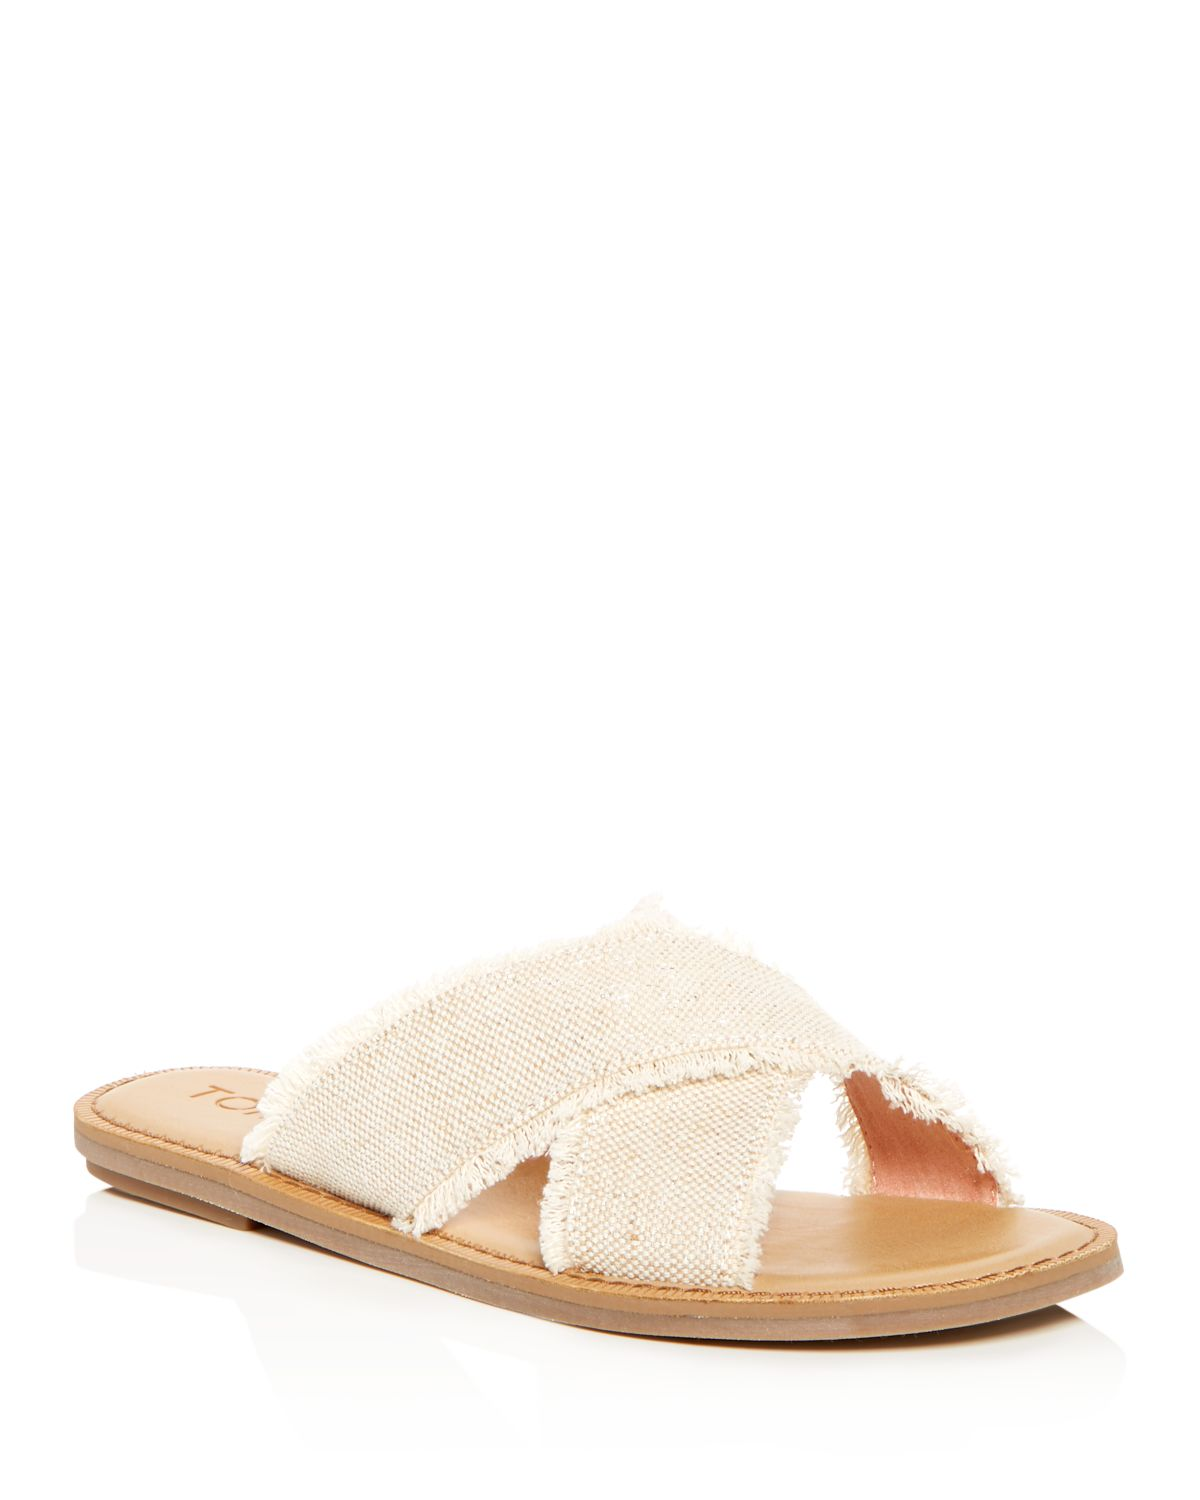 TOMS Viv Metallic Slide Sandals